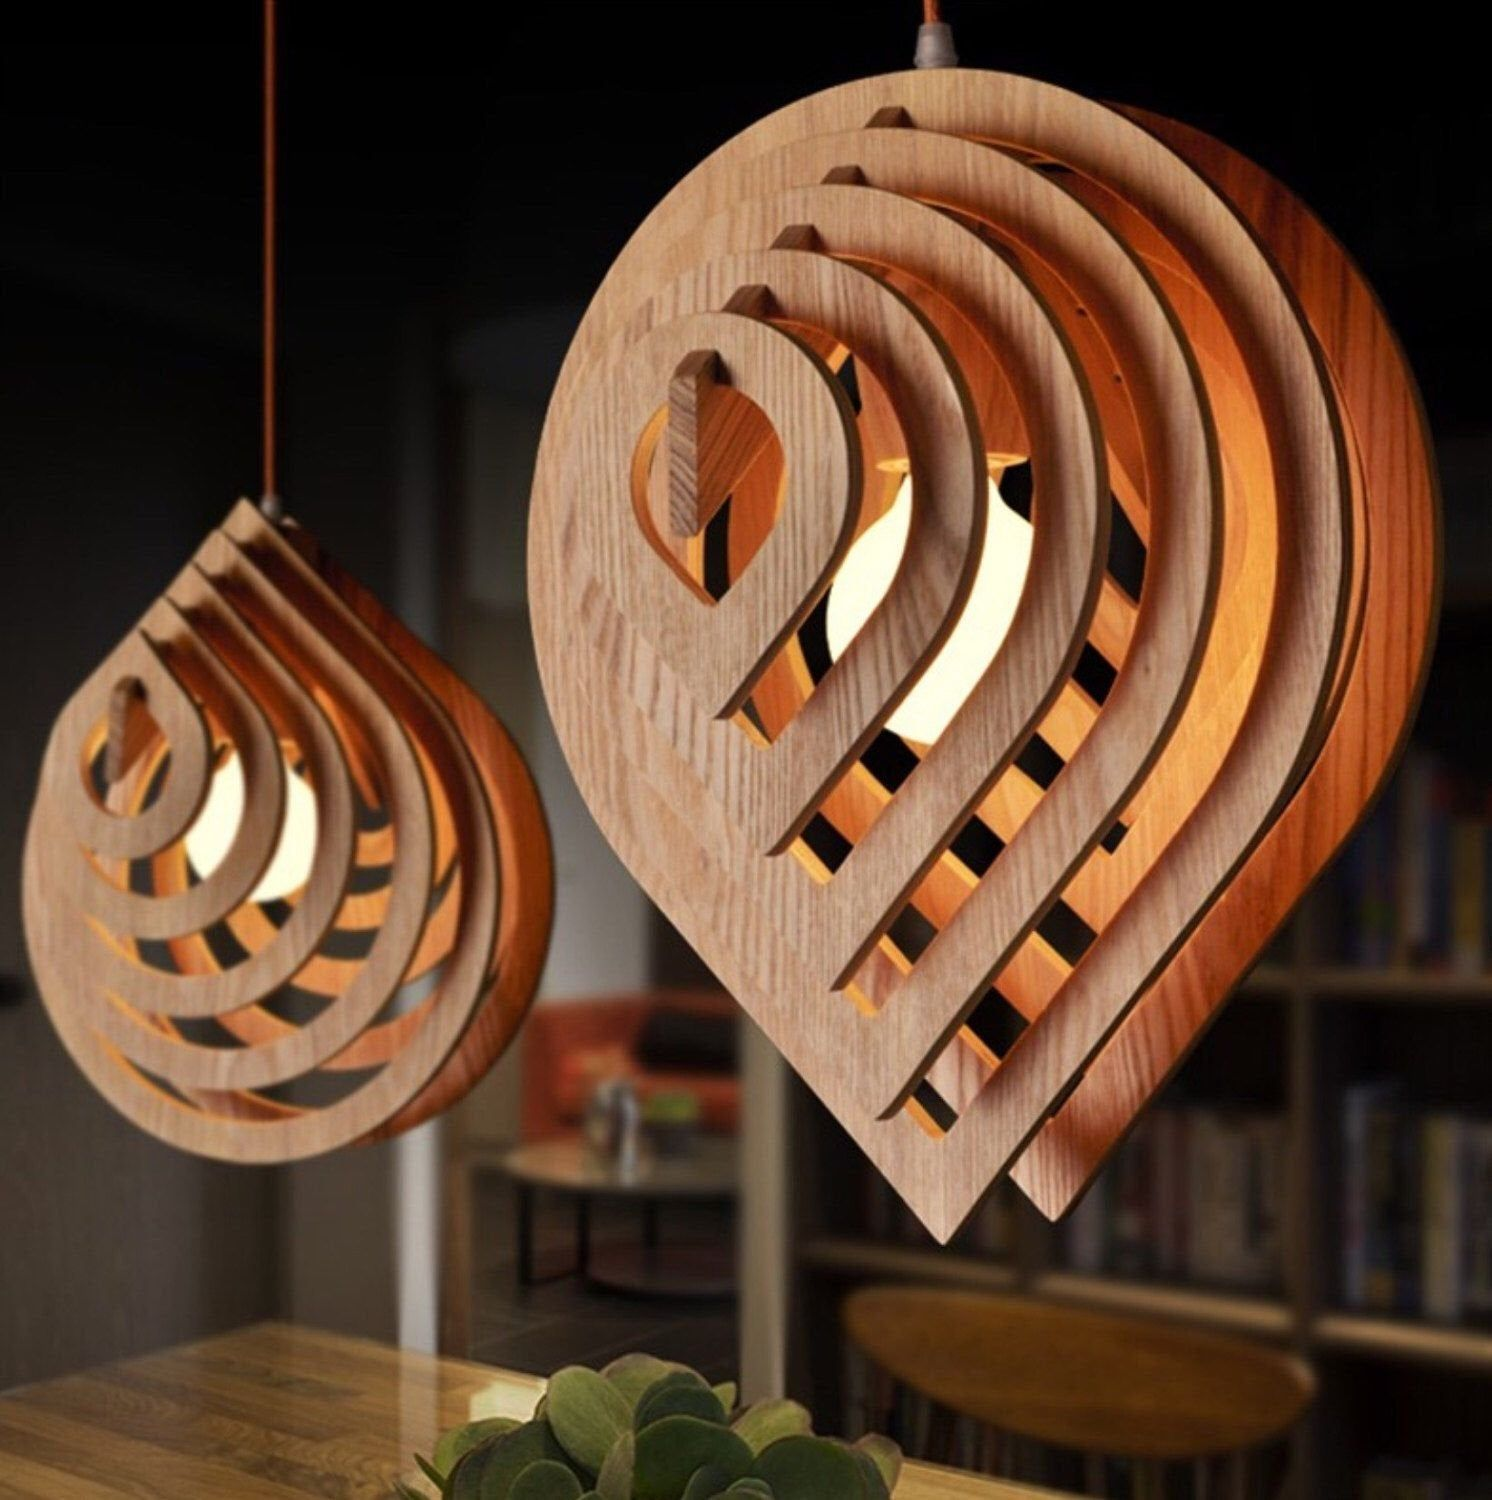 Wooden Lamp Drop Water This Cnc Files Dxf Cdr Svg Dxf Etsy In 2020 Rustic Light Fixtures Wooden Lamp Wood Pendant Light